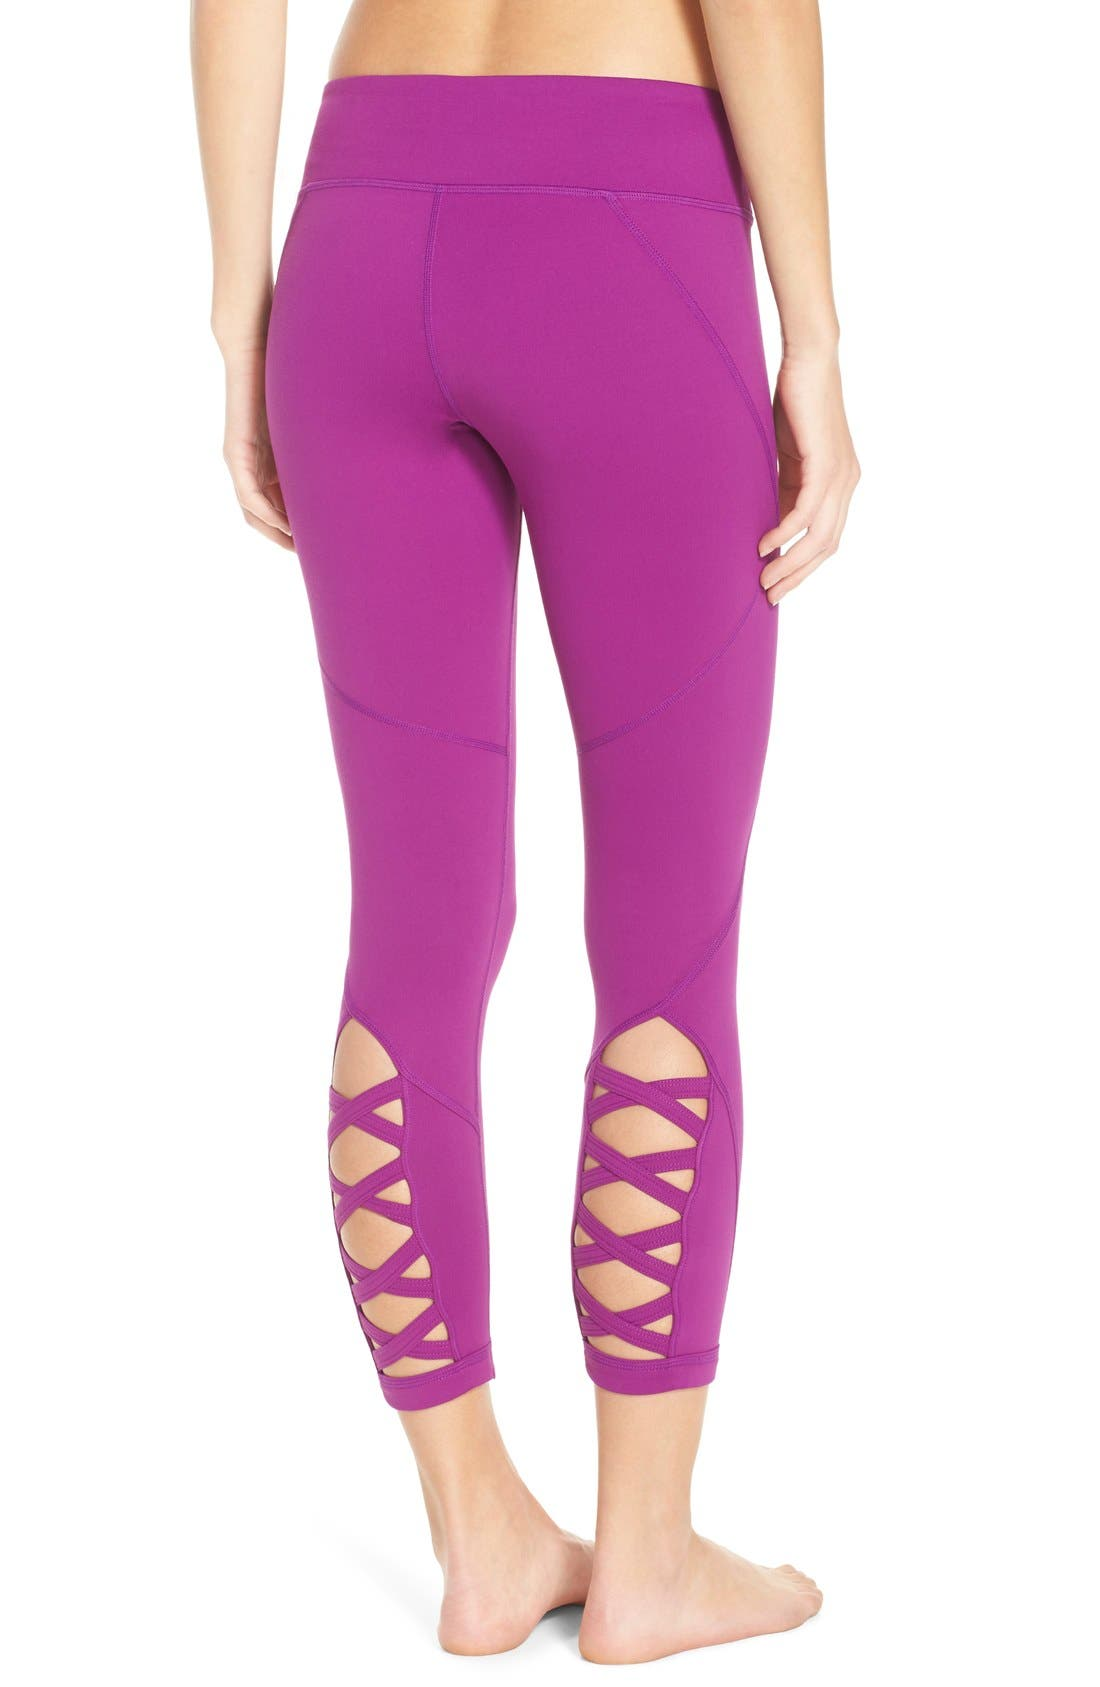 Main Image - Zella 'Lattice' Crop Leggings